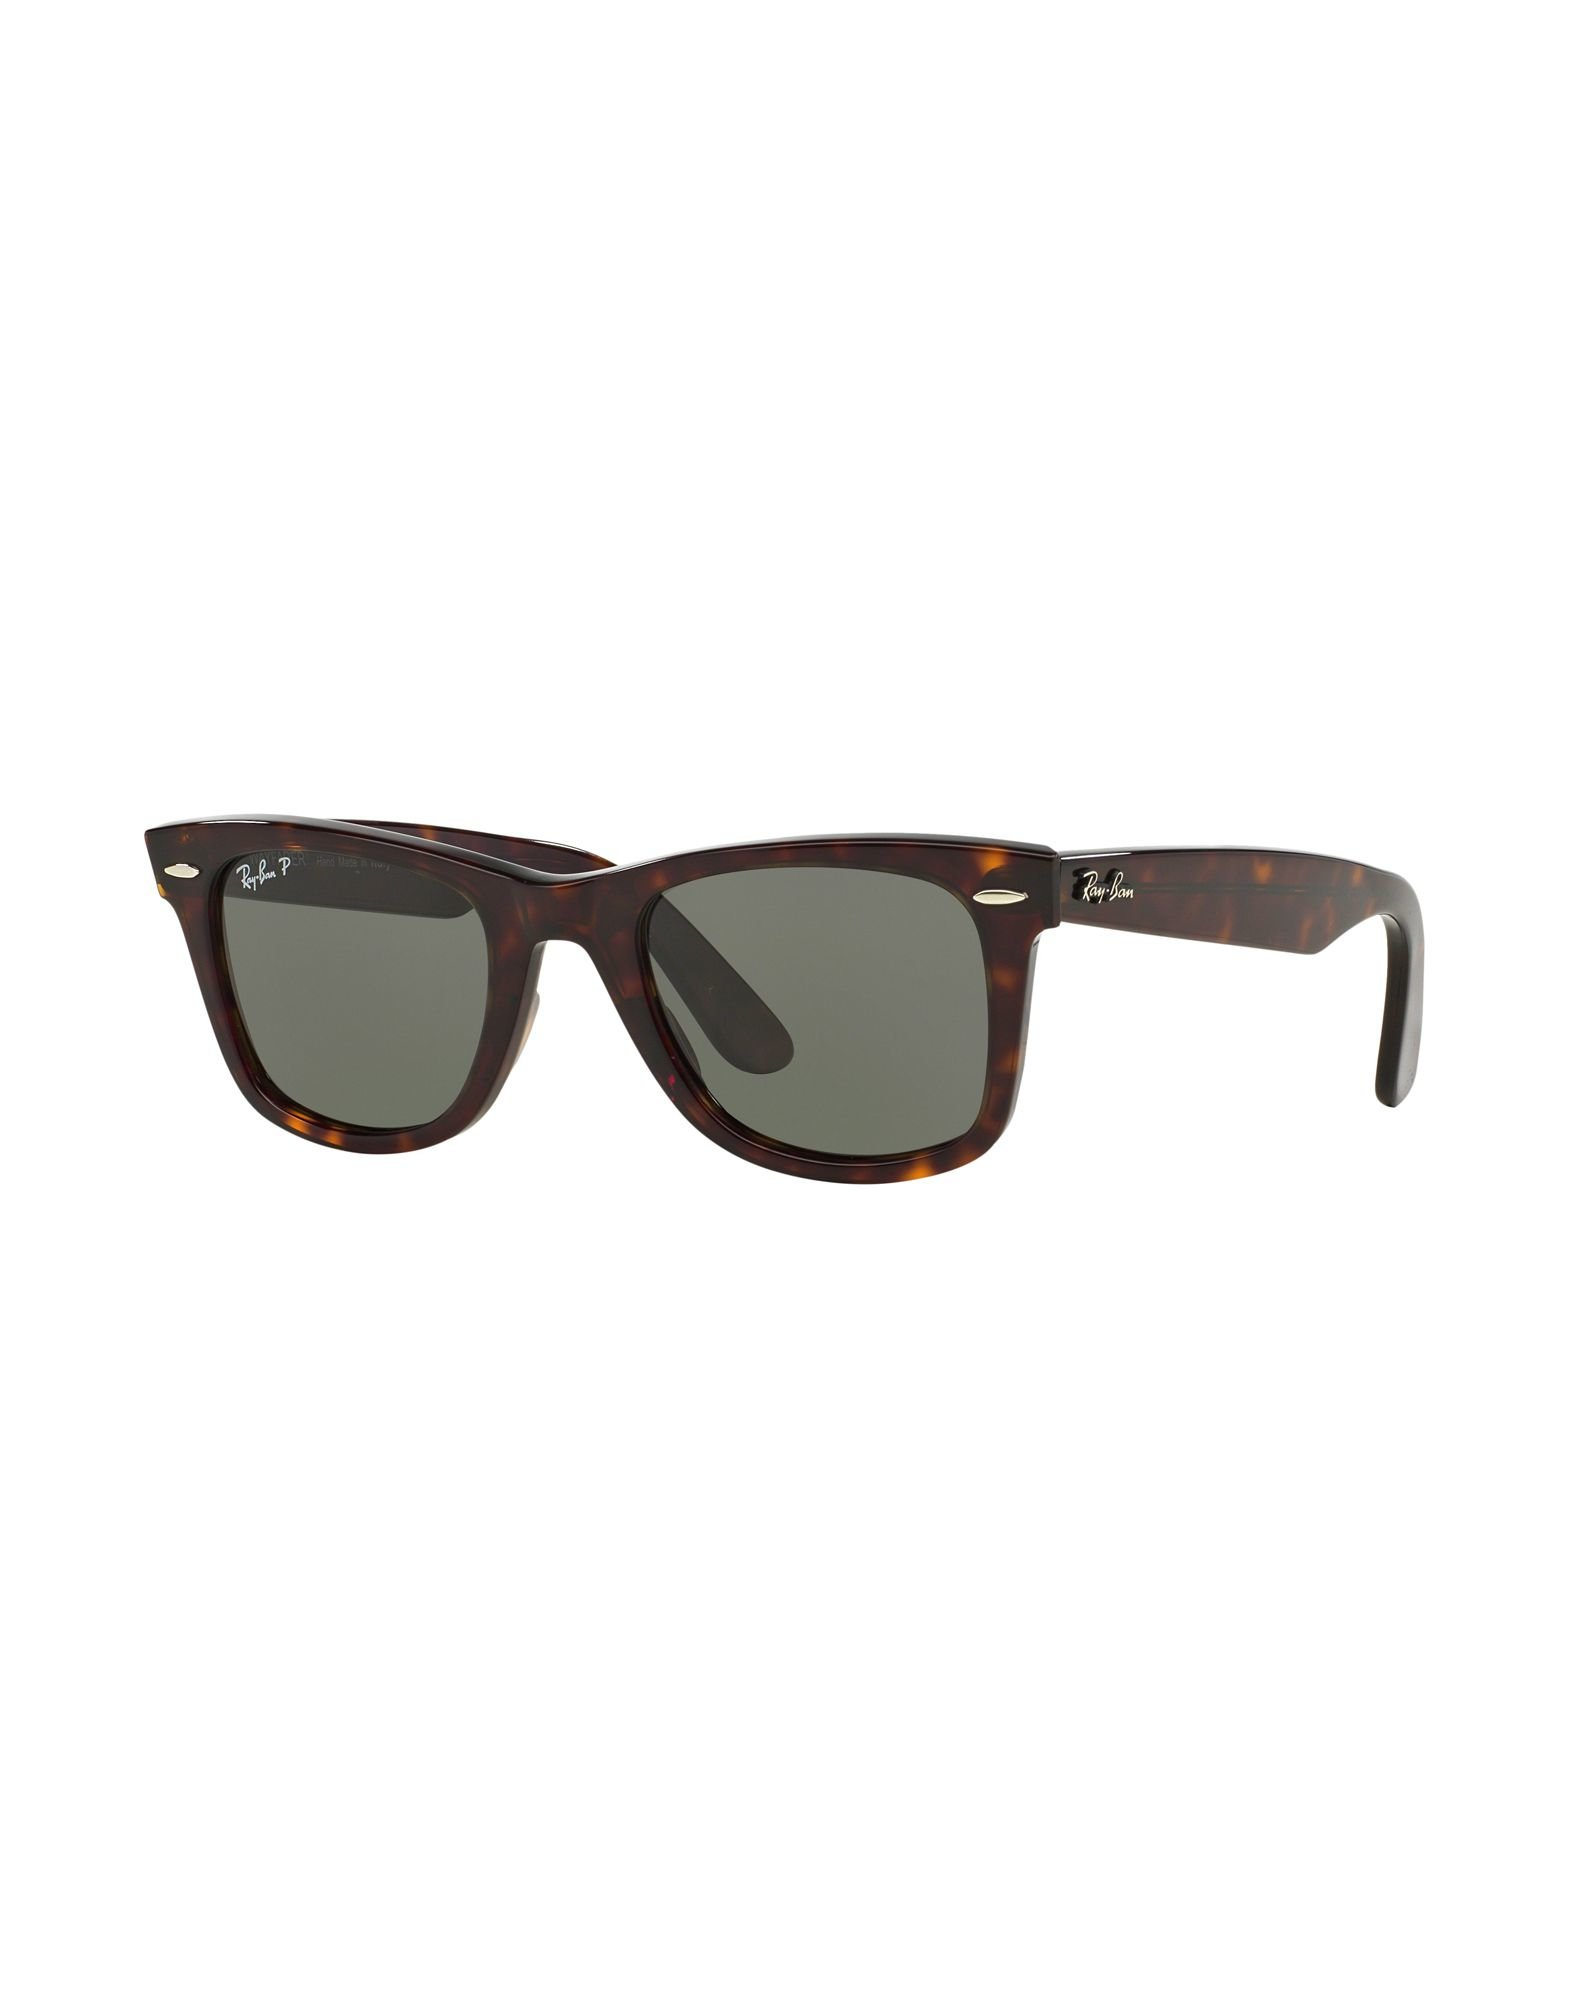 0f567d3ce3c Ray Ban Glasses Frames Brown « Heritage Malta